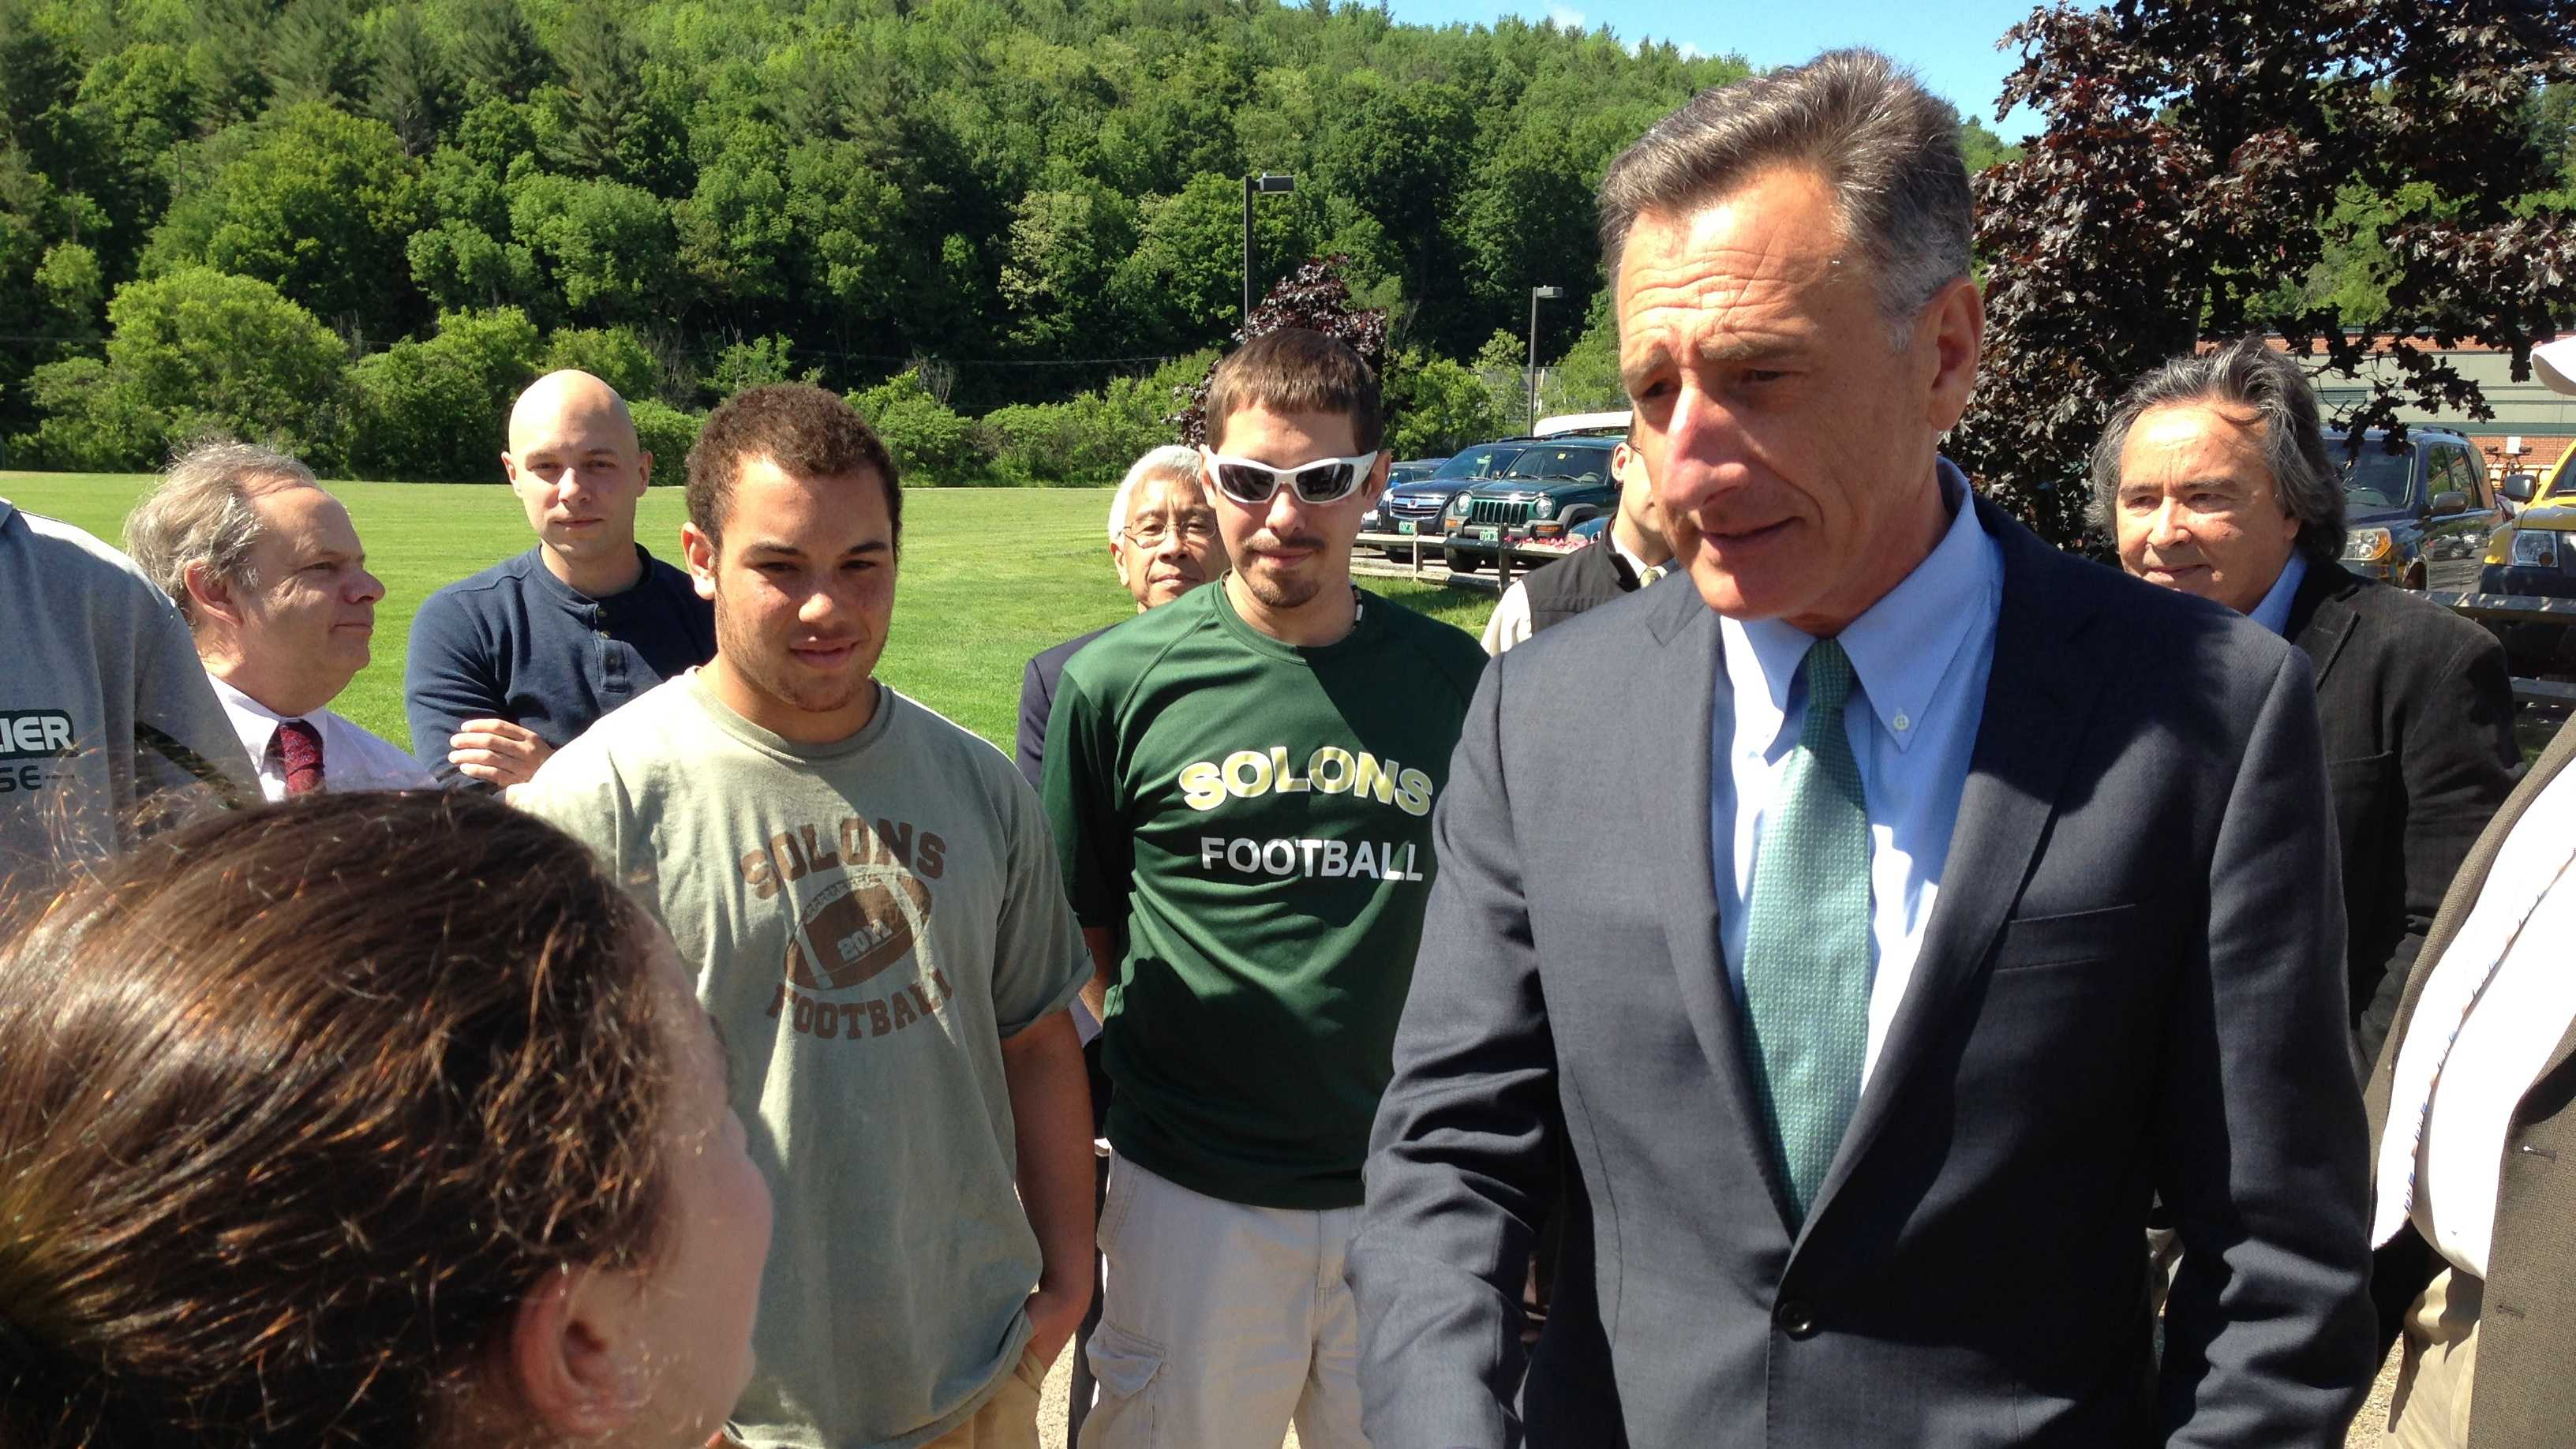 Gov. Peter Shumlin greets athletes at Montpelier High School Tuesday before signing the concussion bill.